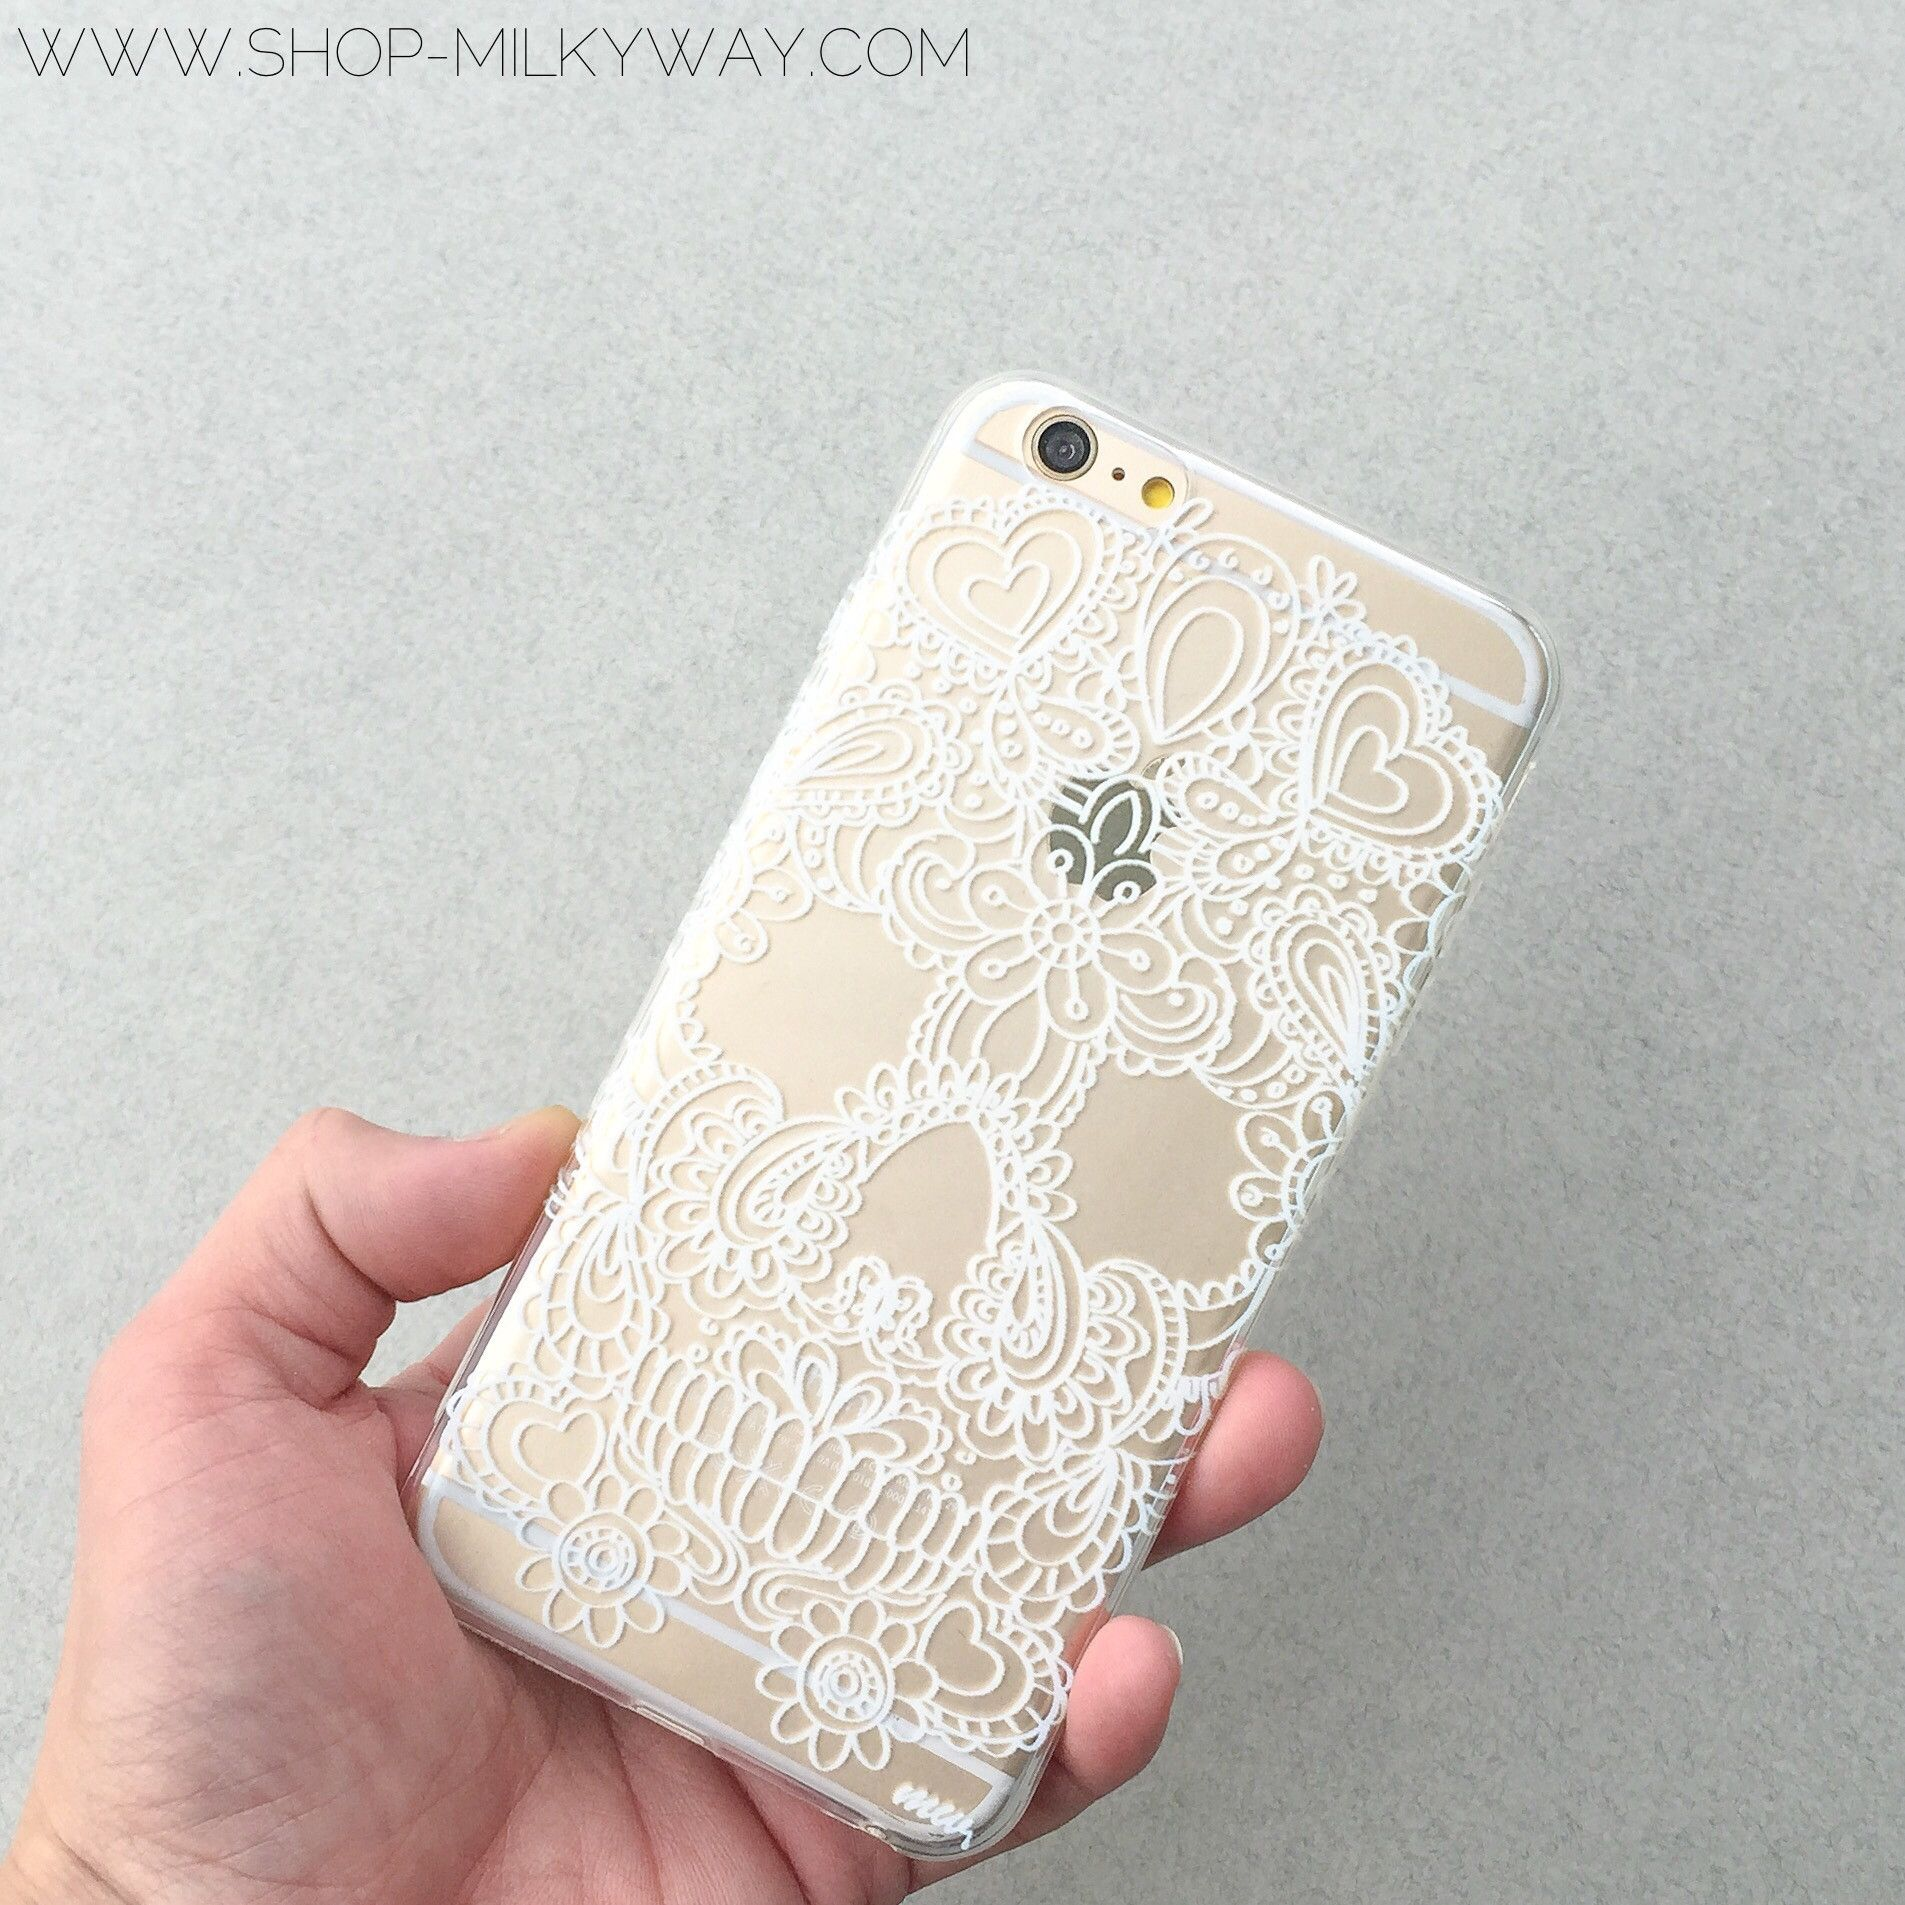 "Clear Plastic Case Cover for iPhone 6Plus (5.5"") Henna Floral Skull"